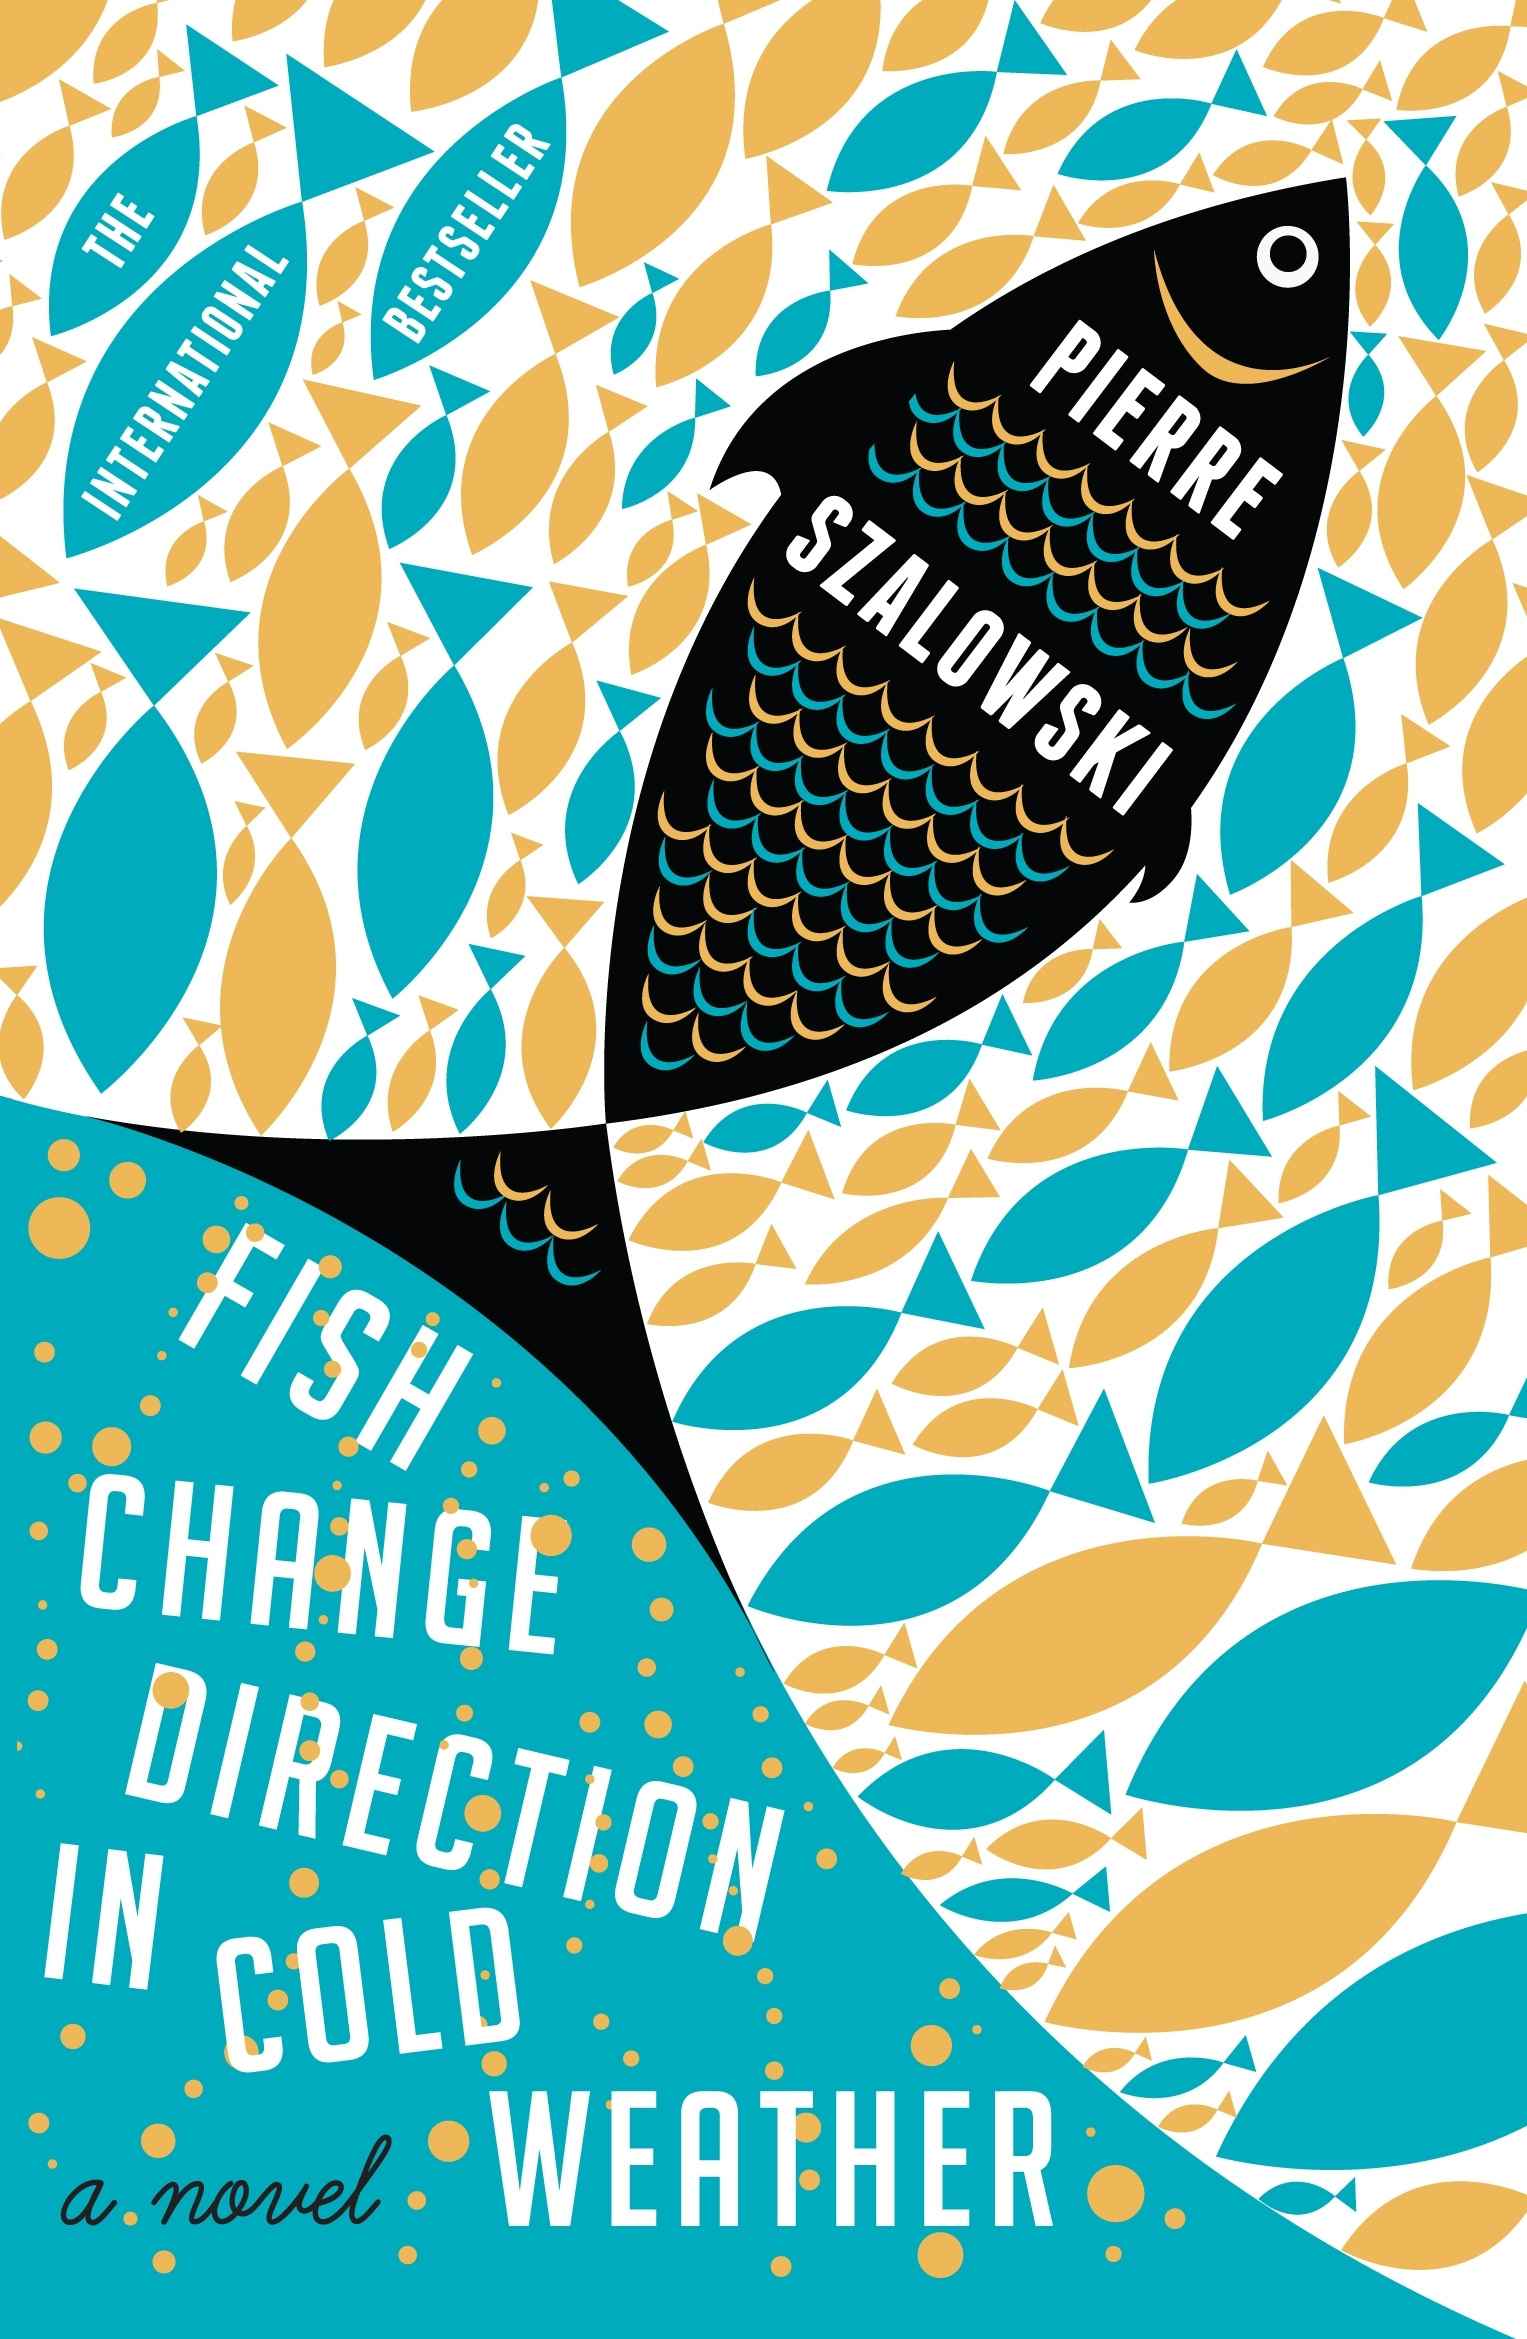 Fish change direction in cold weather by pierre szalowski for Fishpond books